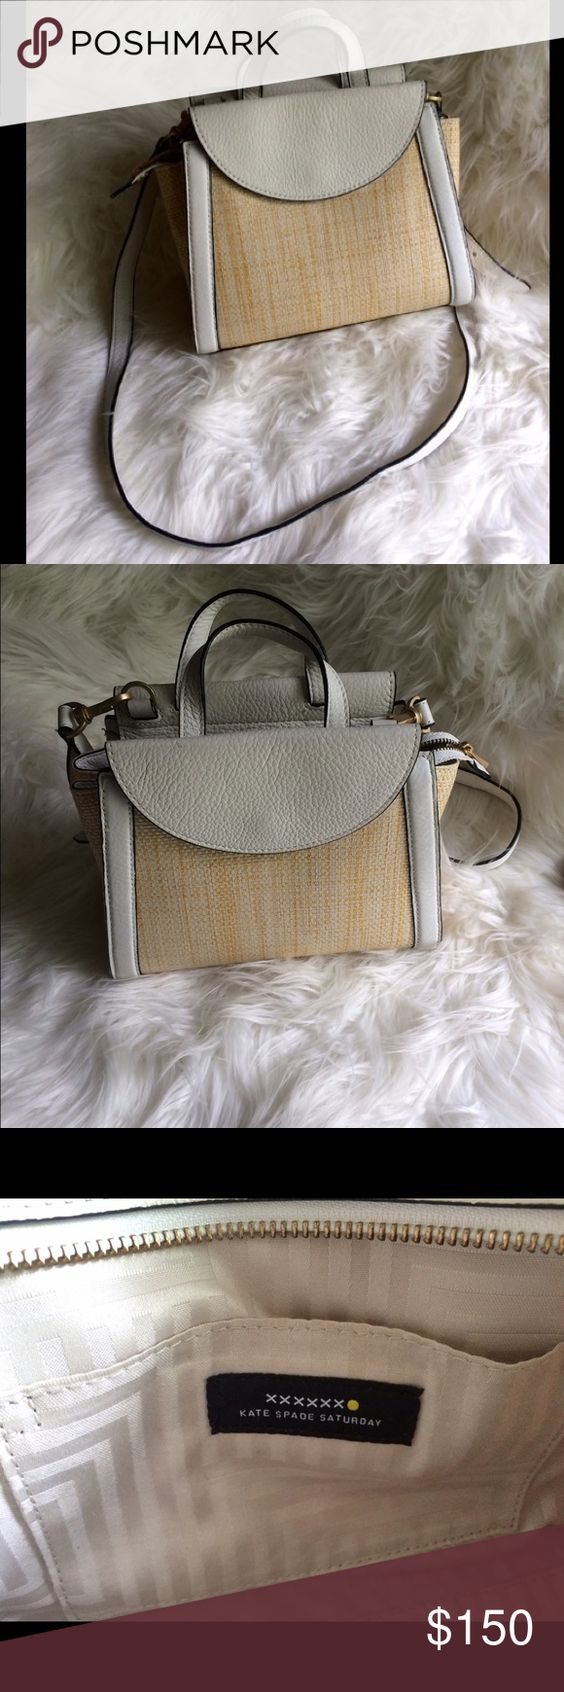 Kate Spade satchel (side purse) I absolutely love this bag! It is a classy classic that is perfect for brunch, tea, or a night out on the town! My favorite part about this bag is that it reminds me of Audrey Hepburn or Jackie O! kate spade Bags Satchels